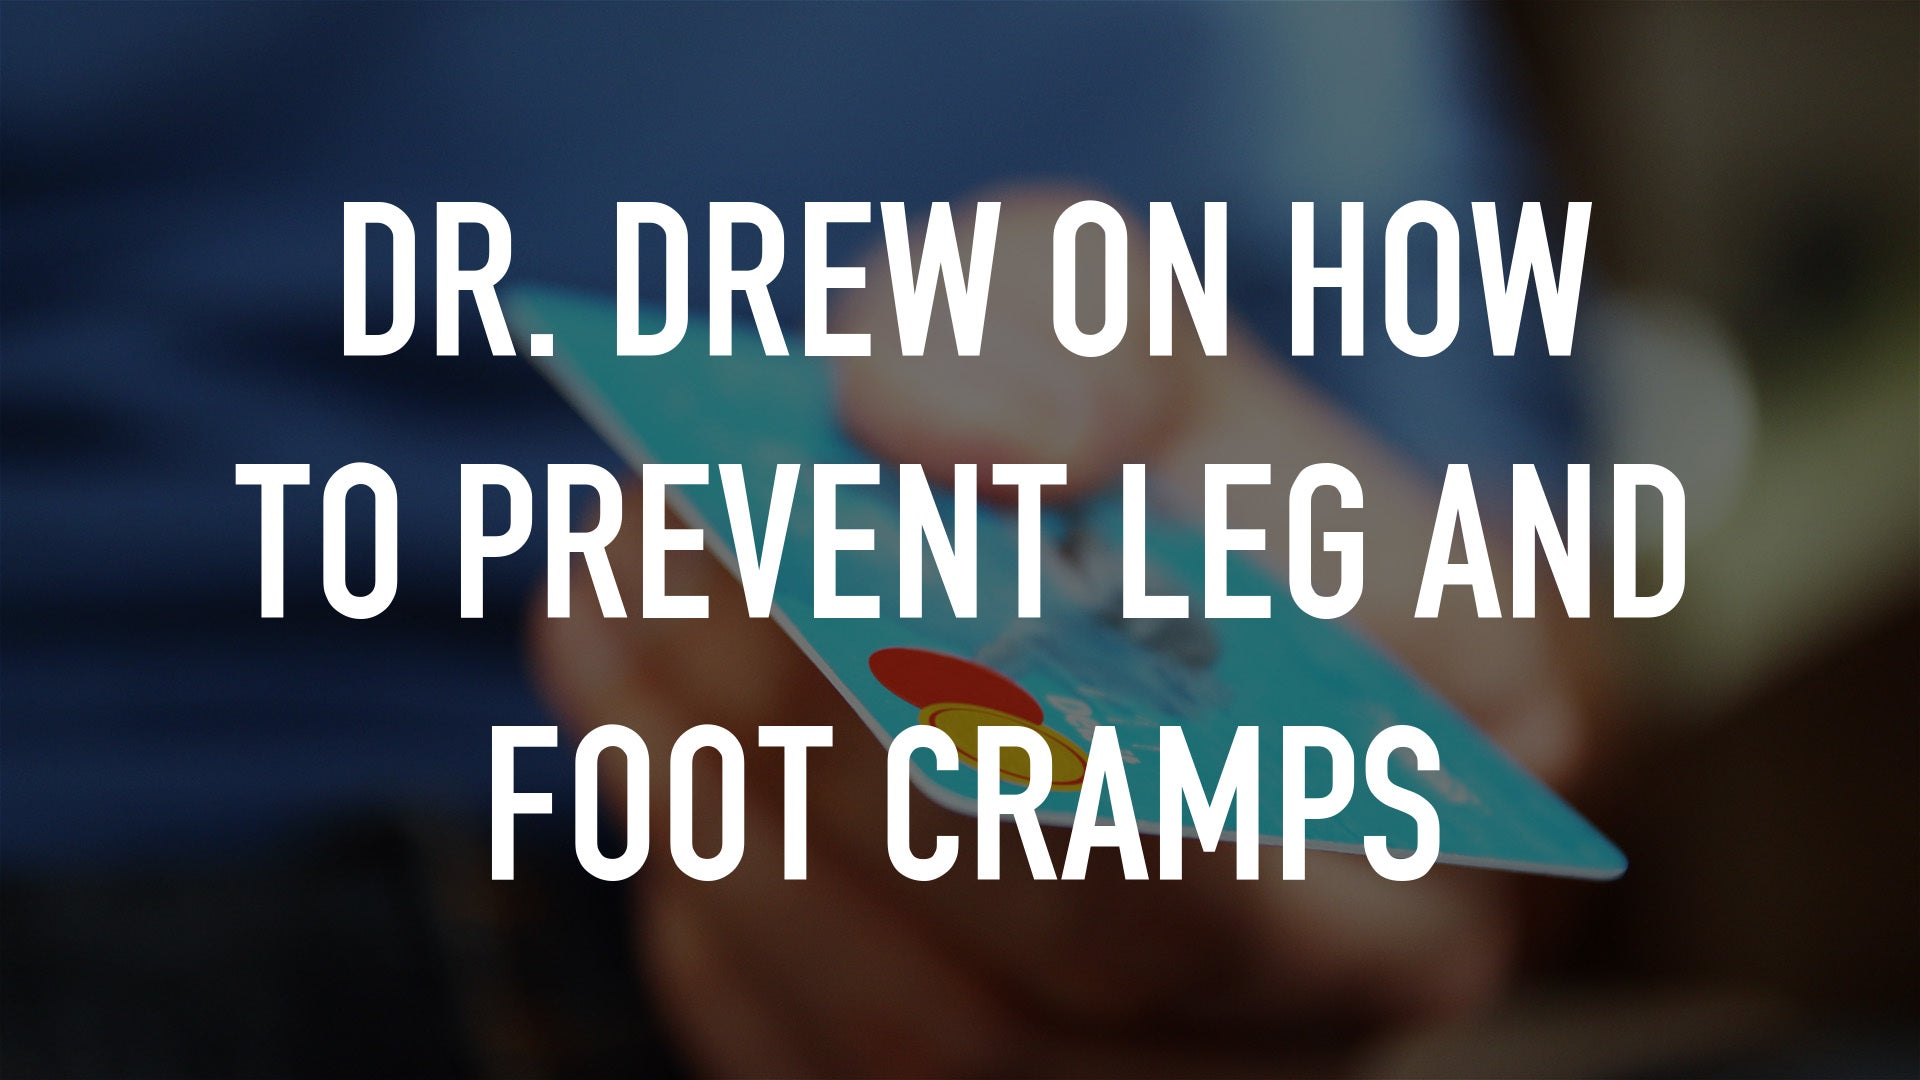 Dr. Drew on How to Prevent Leg and Foot Cramps